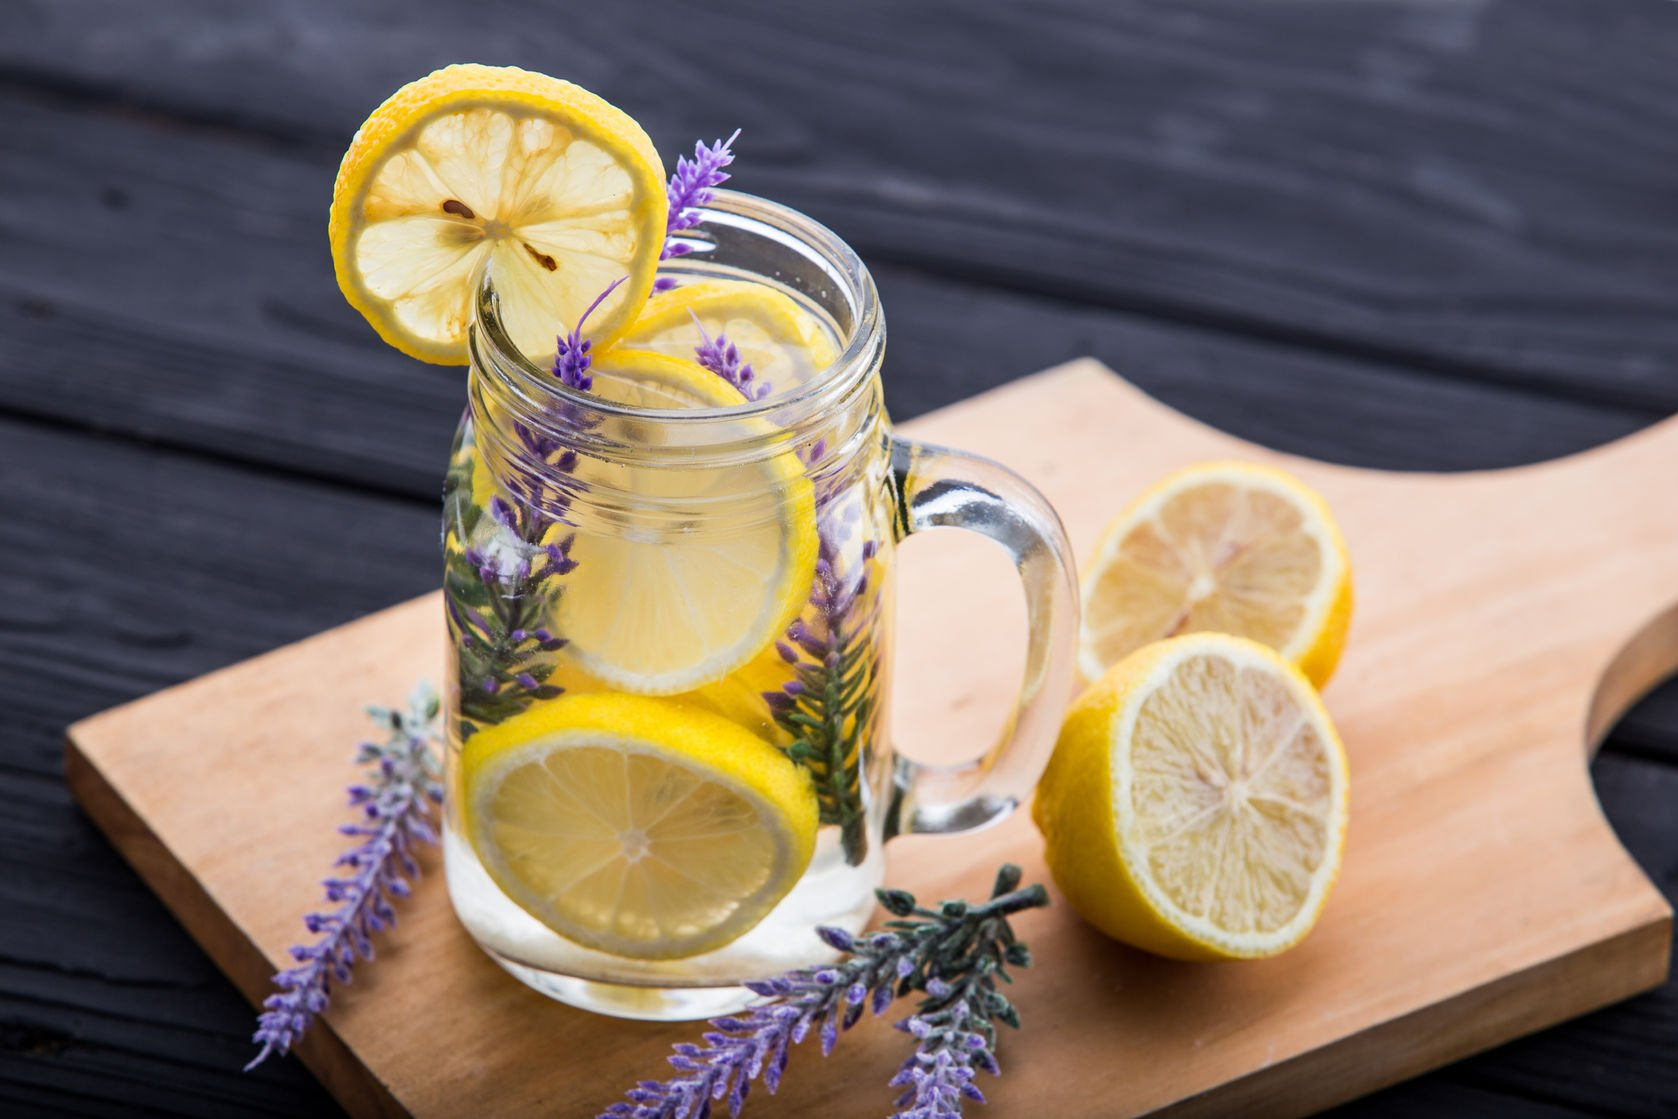 Dorra Slim detox lemon water for detox